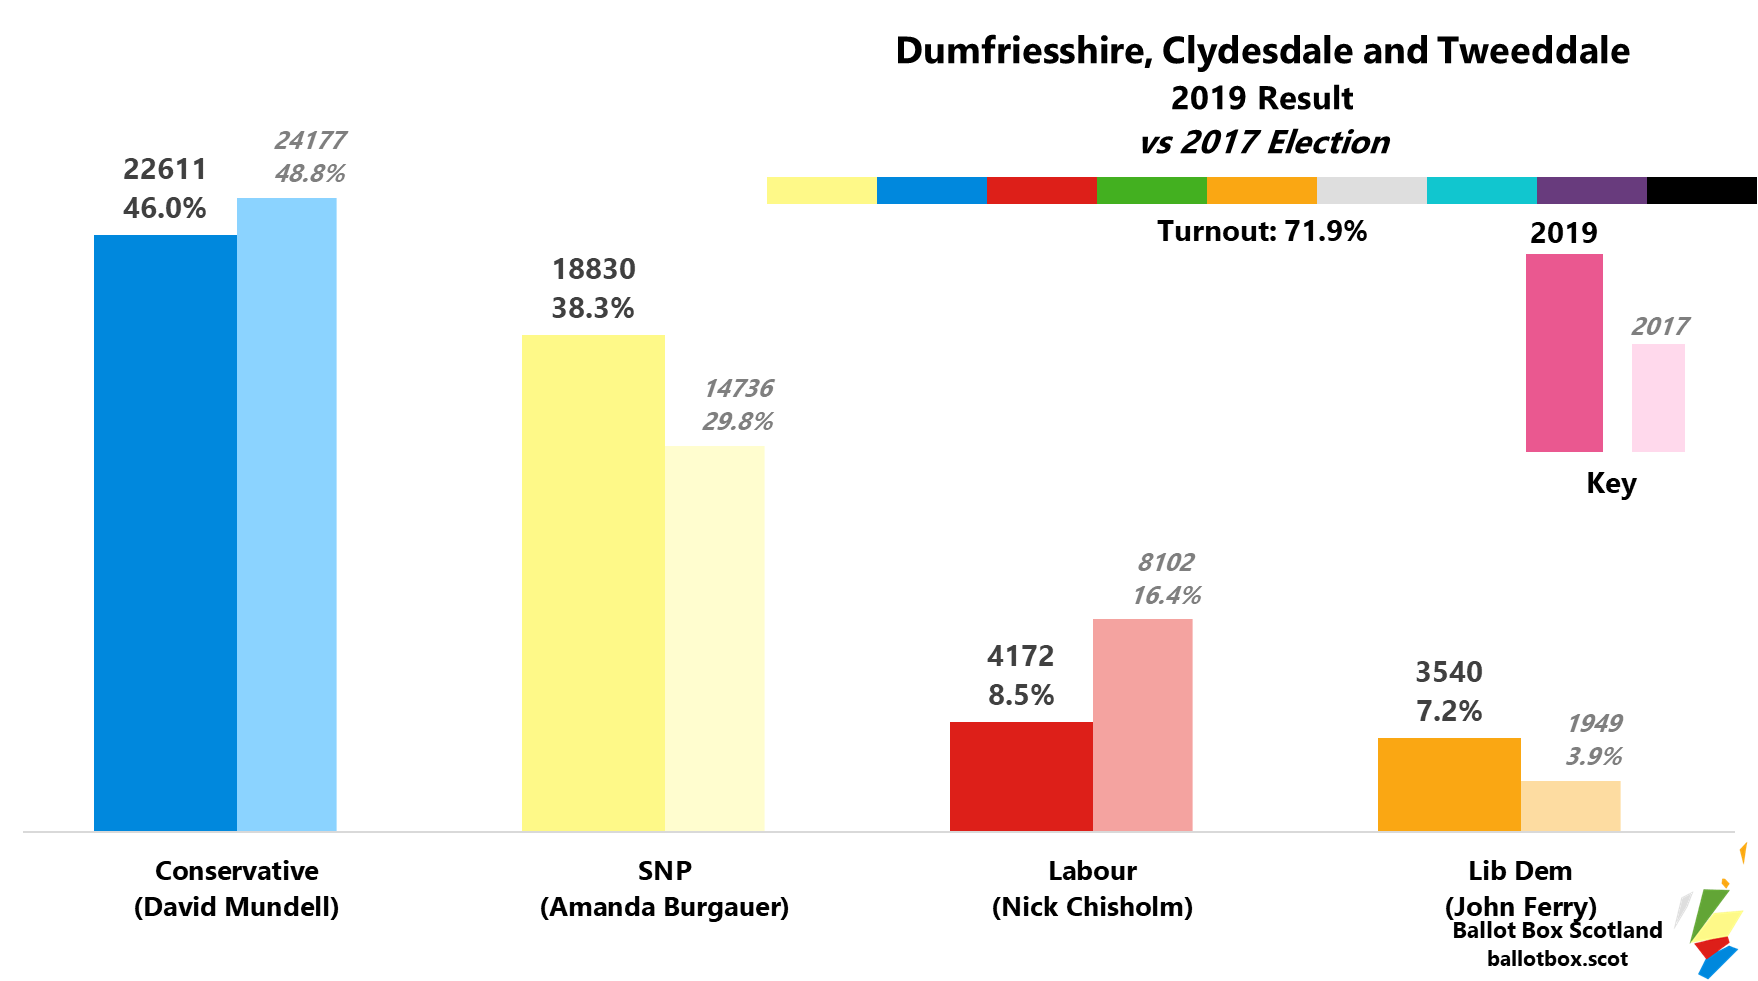 Dumfriesshire Clydesdale and Tweeddale 2019